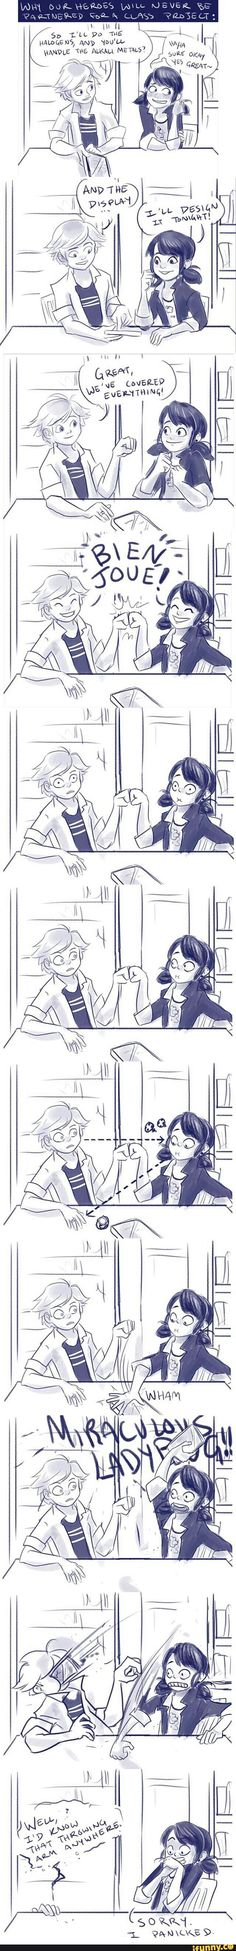 Lol this is great | Miraculous Ladybug